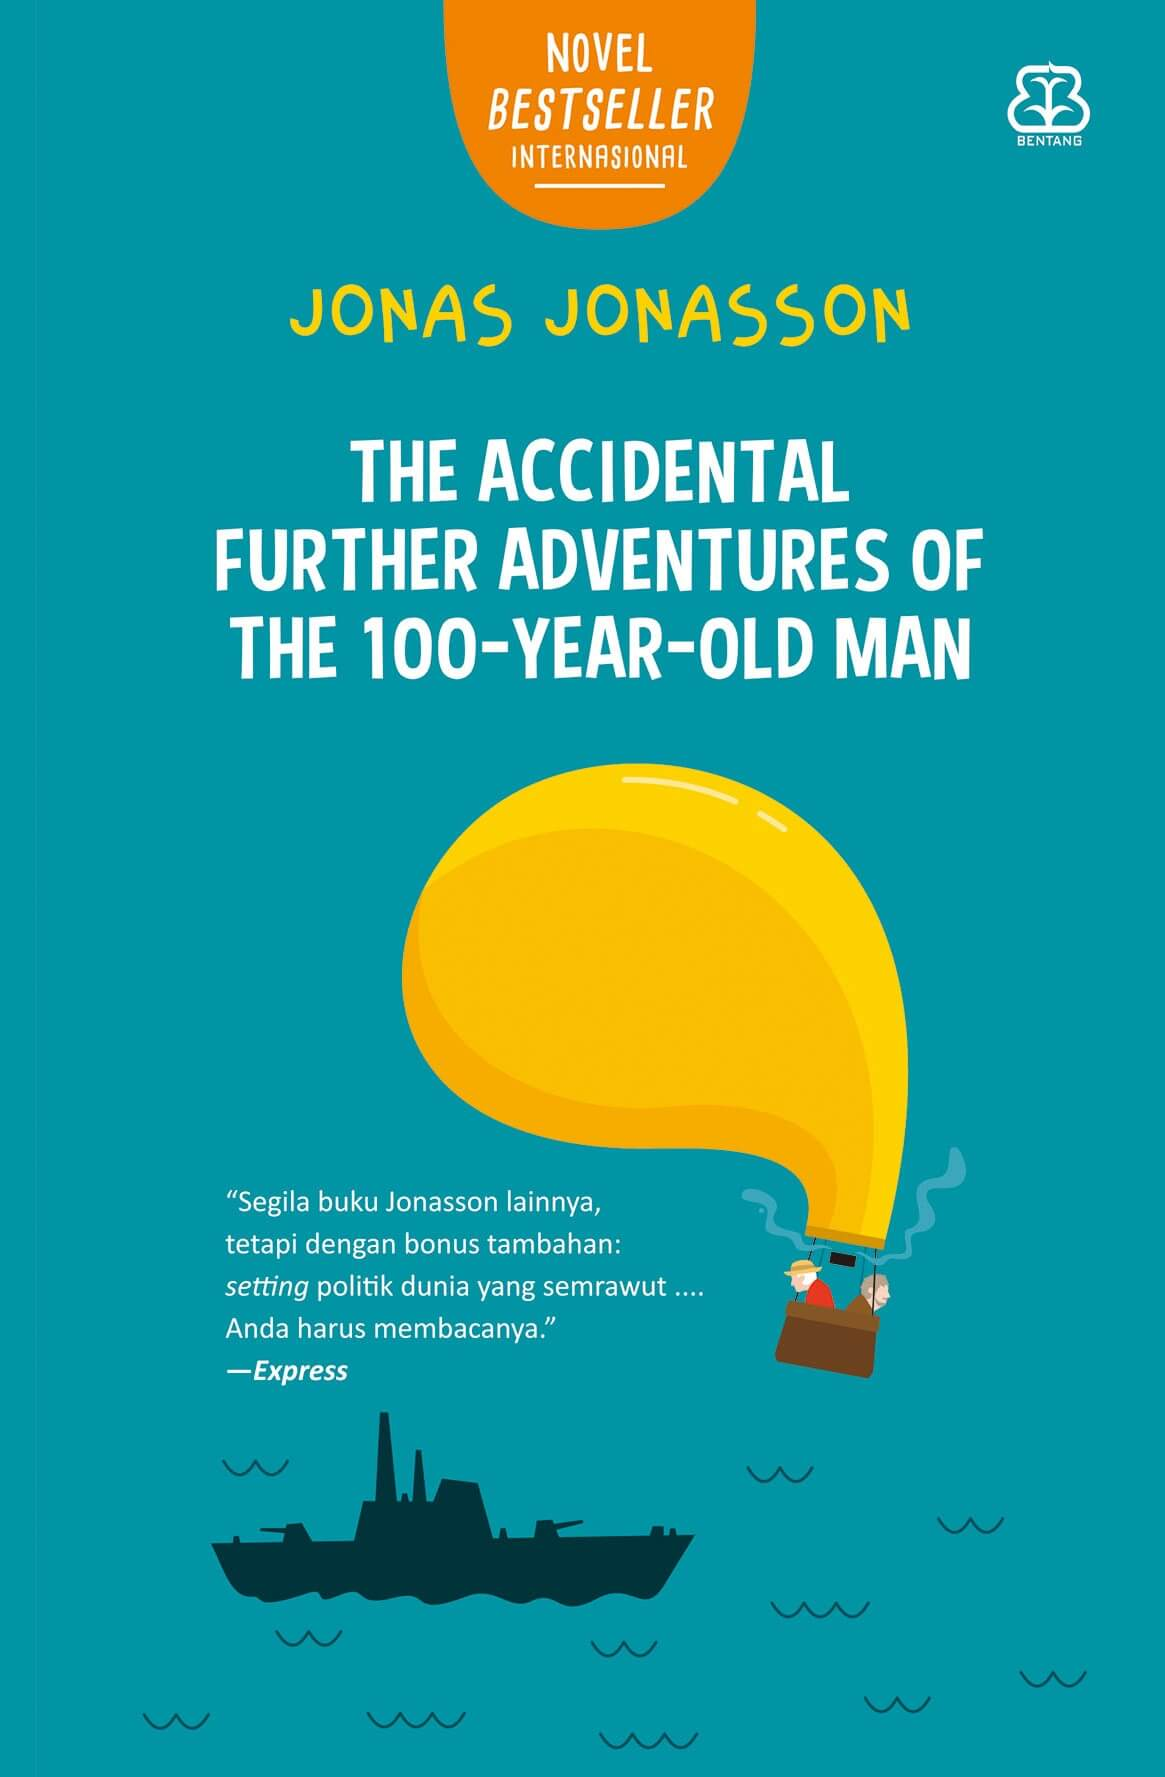 THE ACCIDENTAL FURTHER ADVENTURES OF THE 100-YEAR-OLD MANen